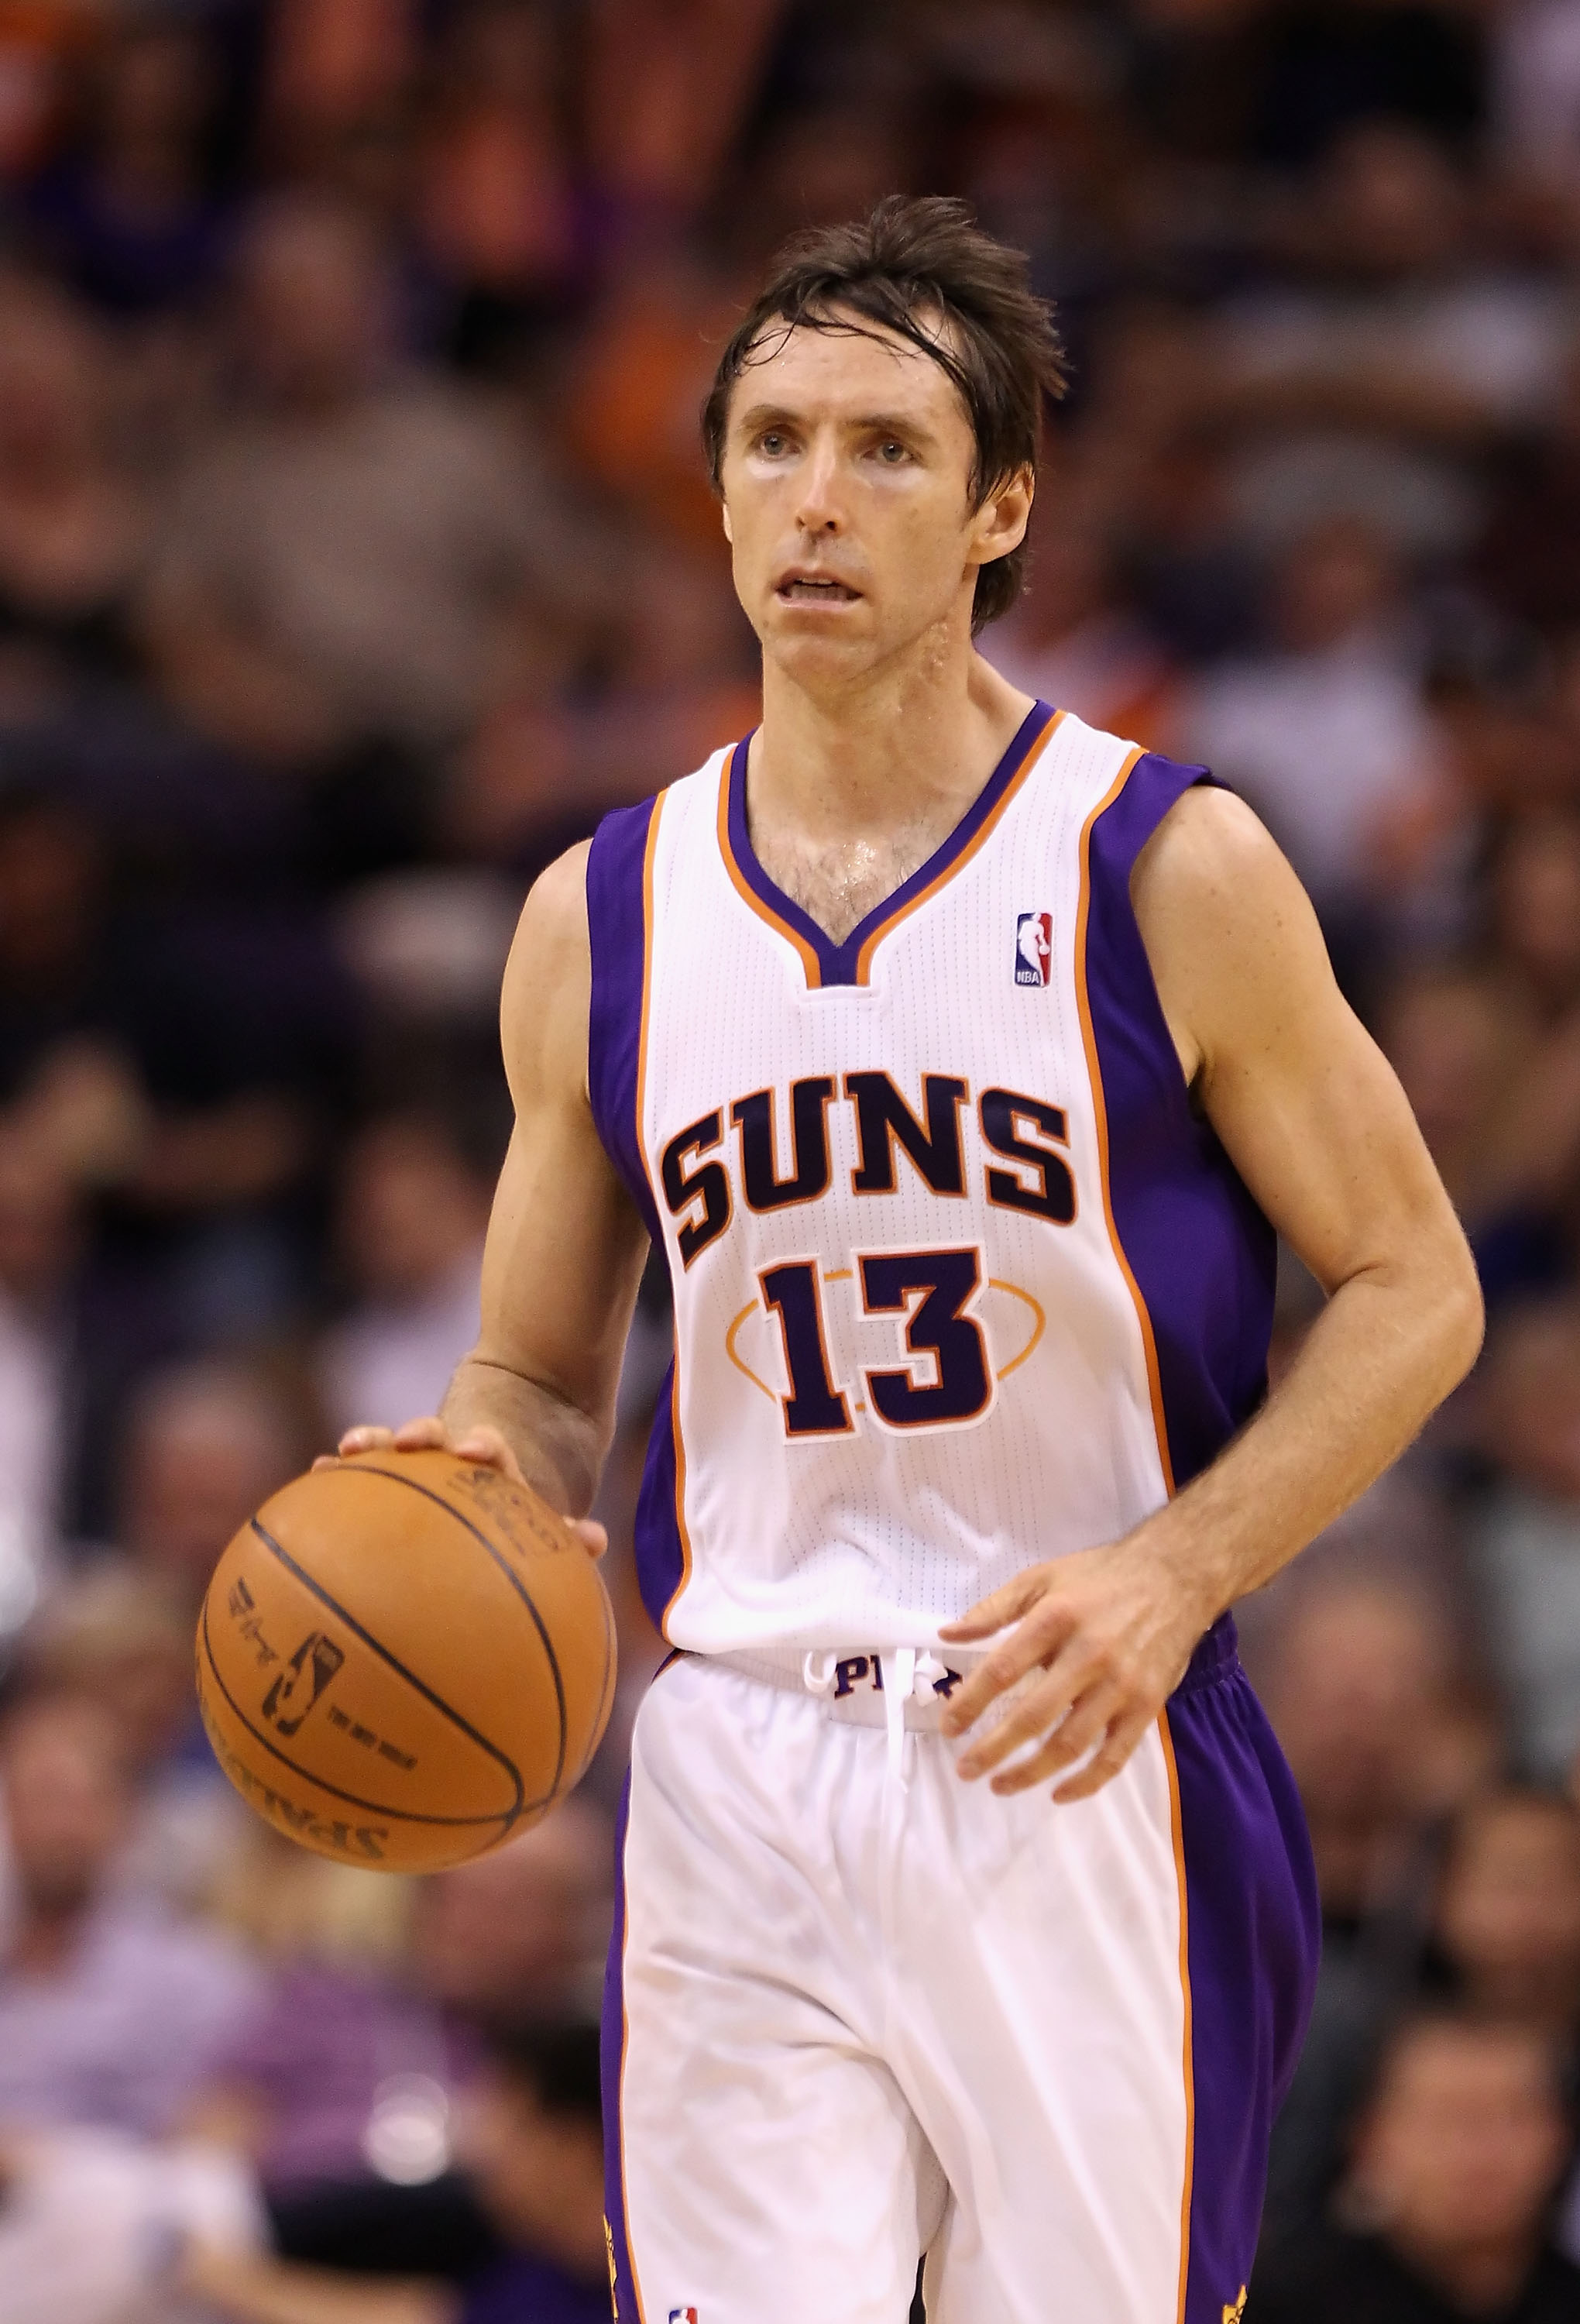 PHOENIX, AZ - APRIL 25:  Steve Nash #13 of the Phoenix Suns moves the ball upcourt during the NBA game against the San Antonio Spurs at US Airways Center on April 25, 2012 in Phoenix, Arizona.  The Spurs defeated the Suns 110-106.  (Photo by Christian Pet